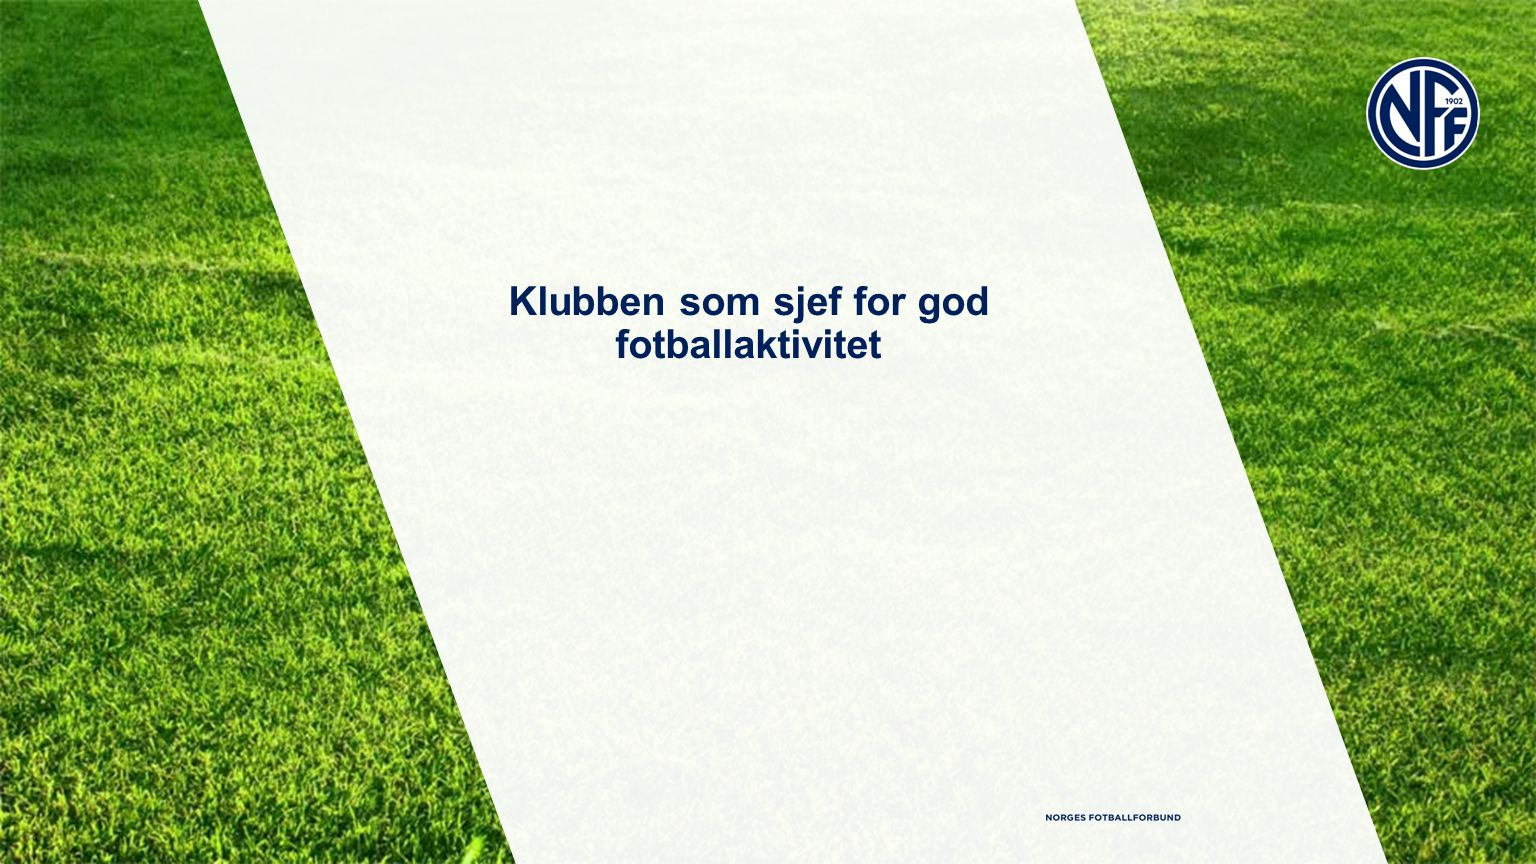 Klubben som sjef for god fotballaktivitet